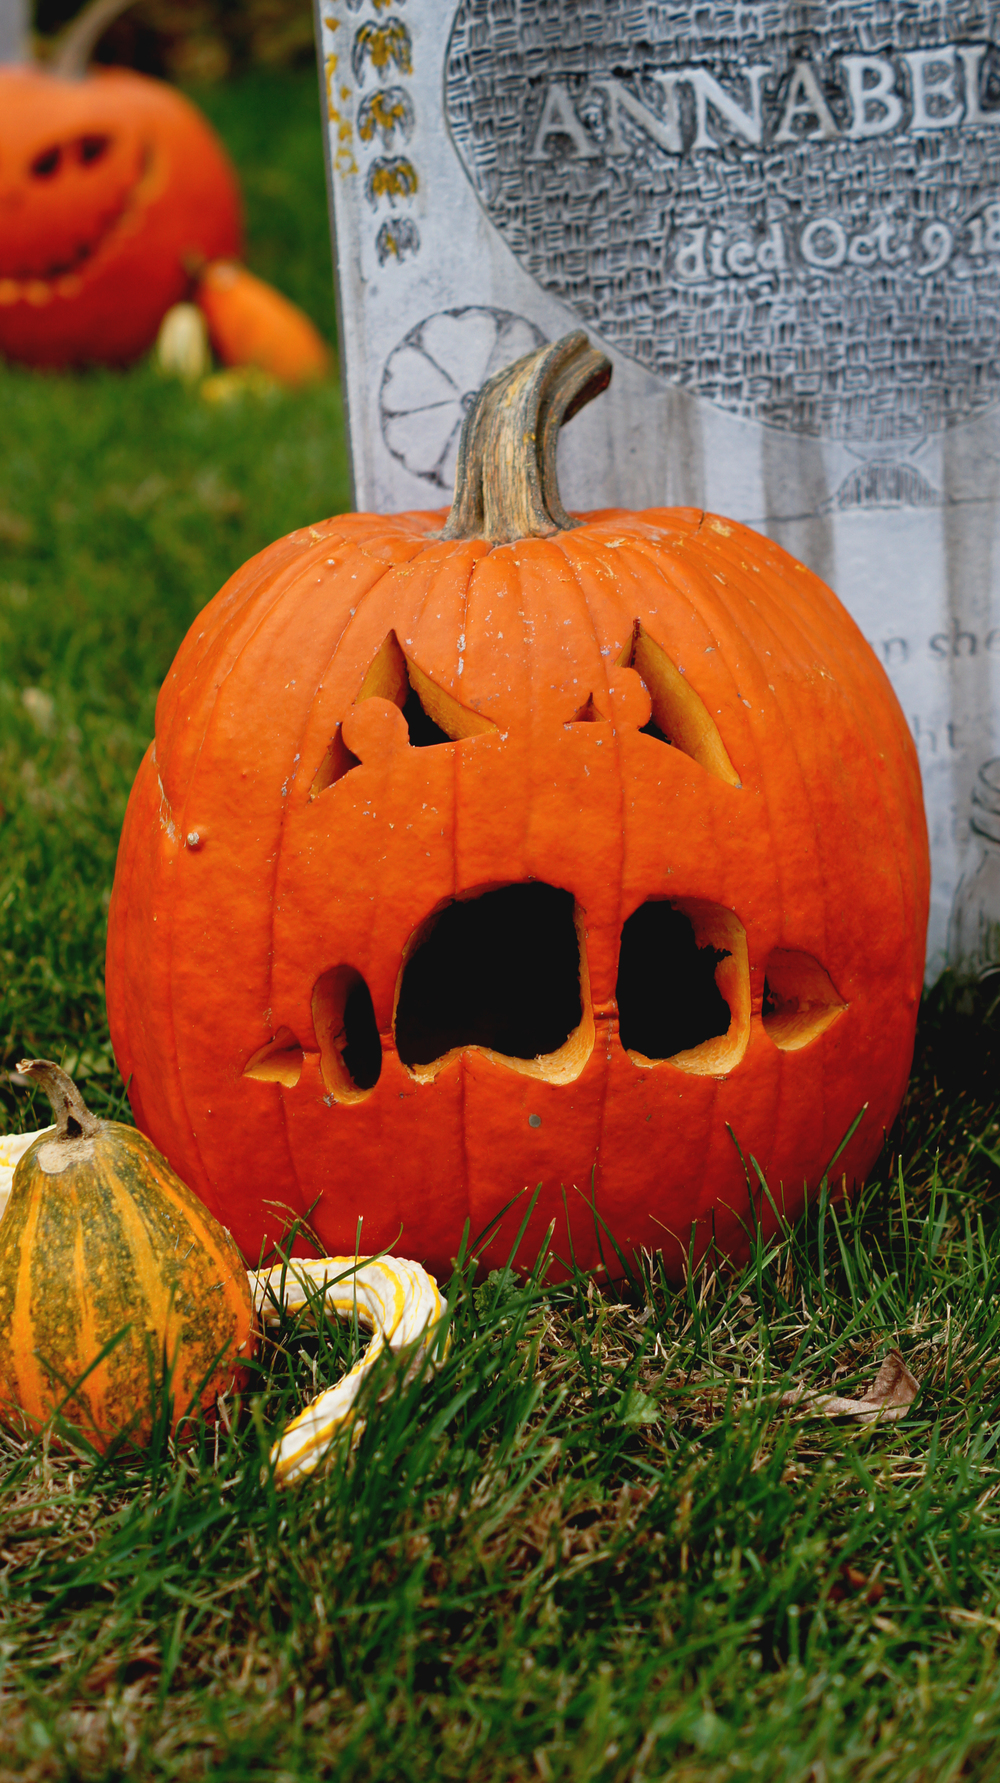 Carved Pumpkin 8.jpg